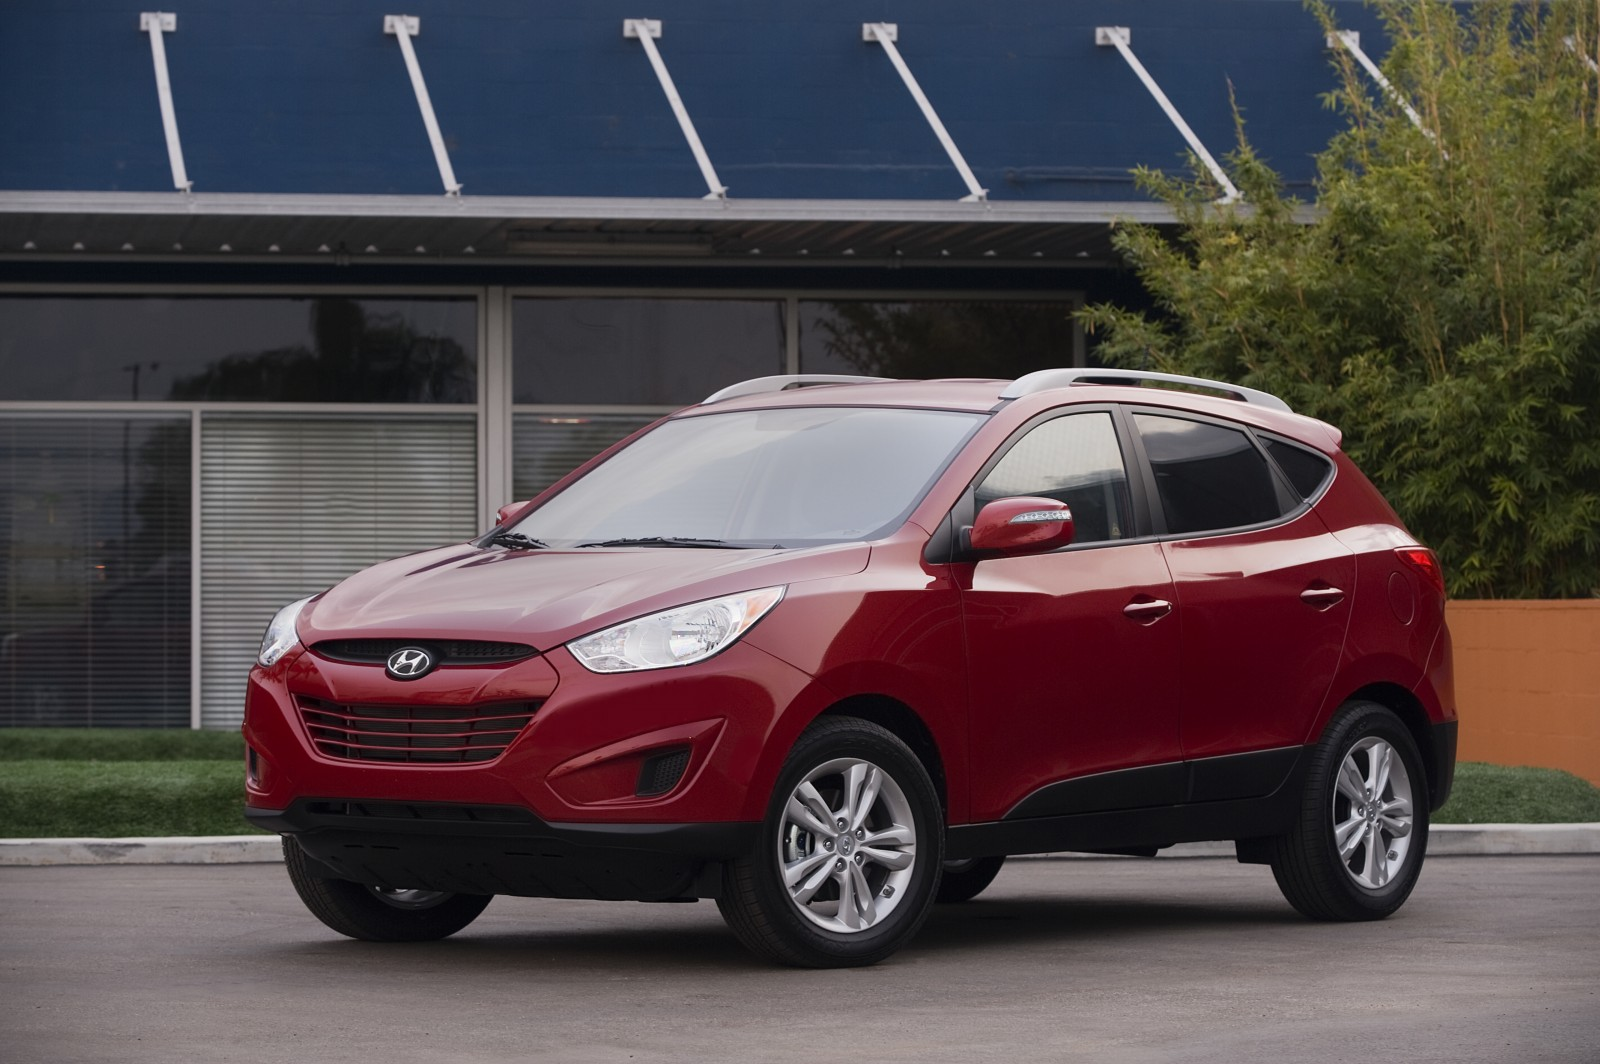 Latest Cars Models Hyundai Tucson 2013